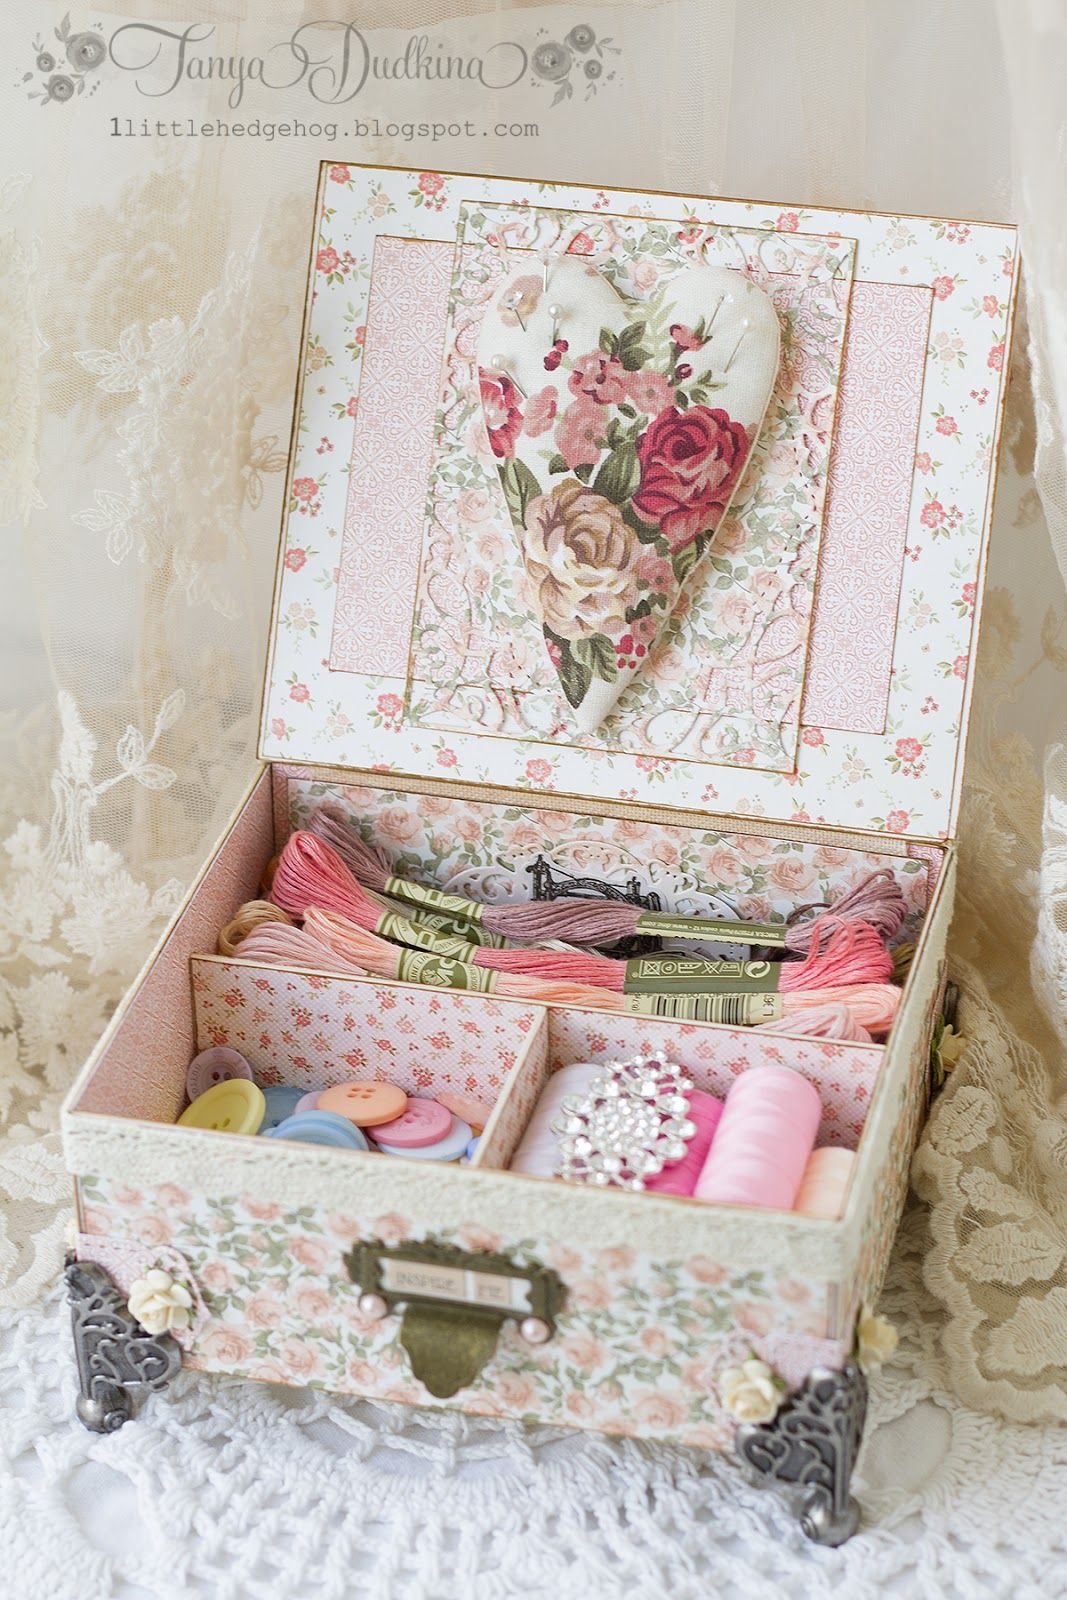 Shabby chic crafts to make - Nice Project To Make From A Cigar Box Note The Heart Pincushion Attached To The Lid